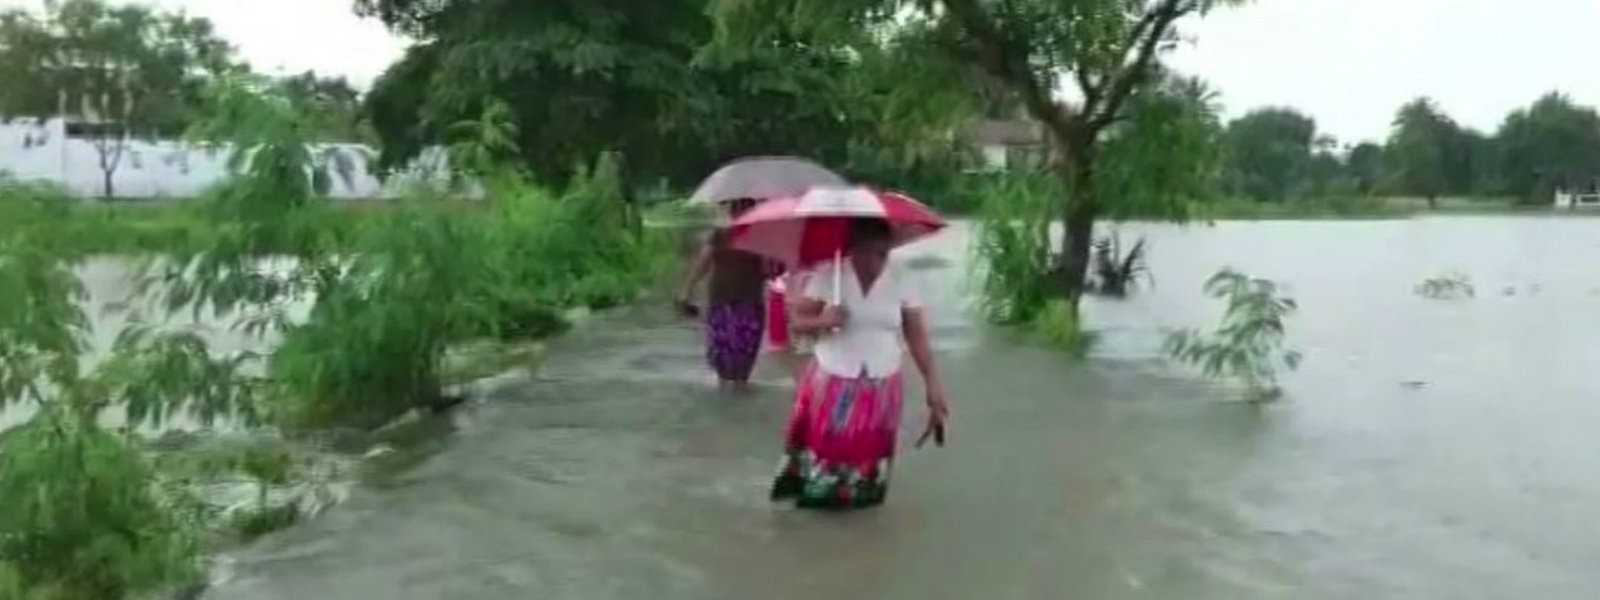 Heavy rain across the island hampers lives